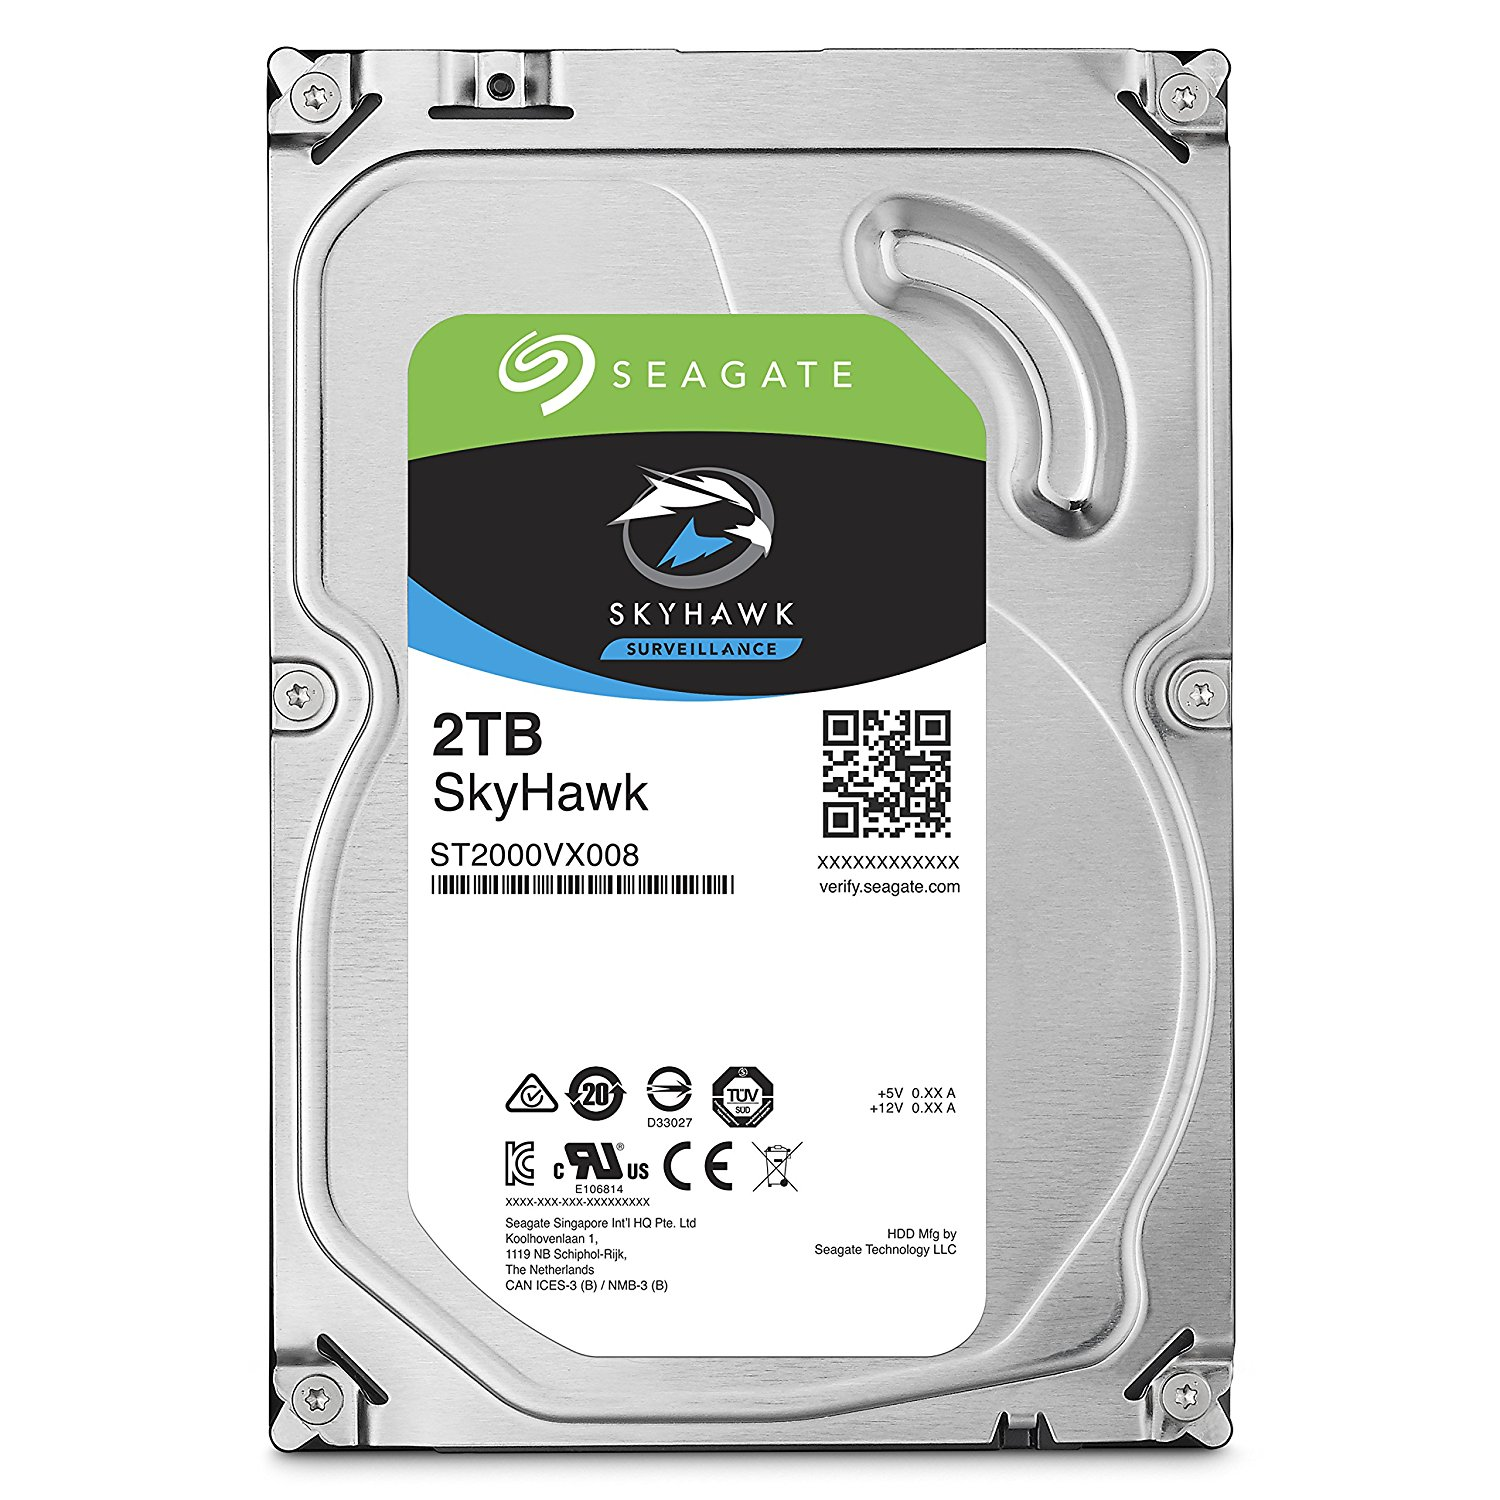 ST2000VX008 SEAGATE 2TB SKYHAWK SATA6GB/S 64MB 5900 RPM ************************* SPECIAL ORDER ITEM NO RETURNS OR SUBJECT TO RESTOCK FEE *************************